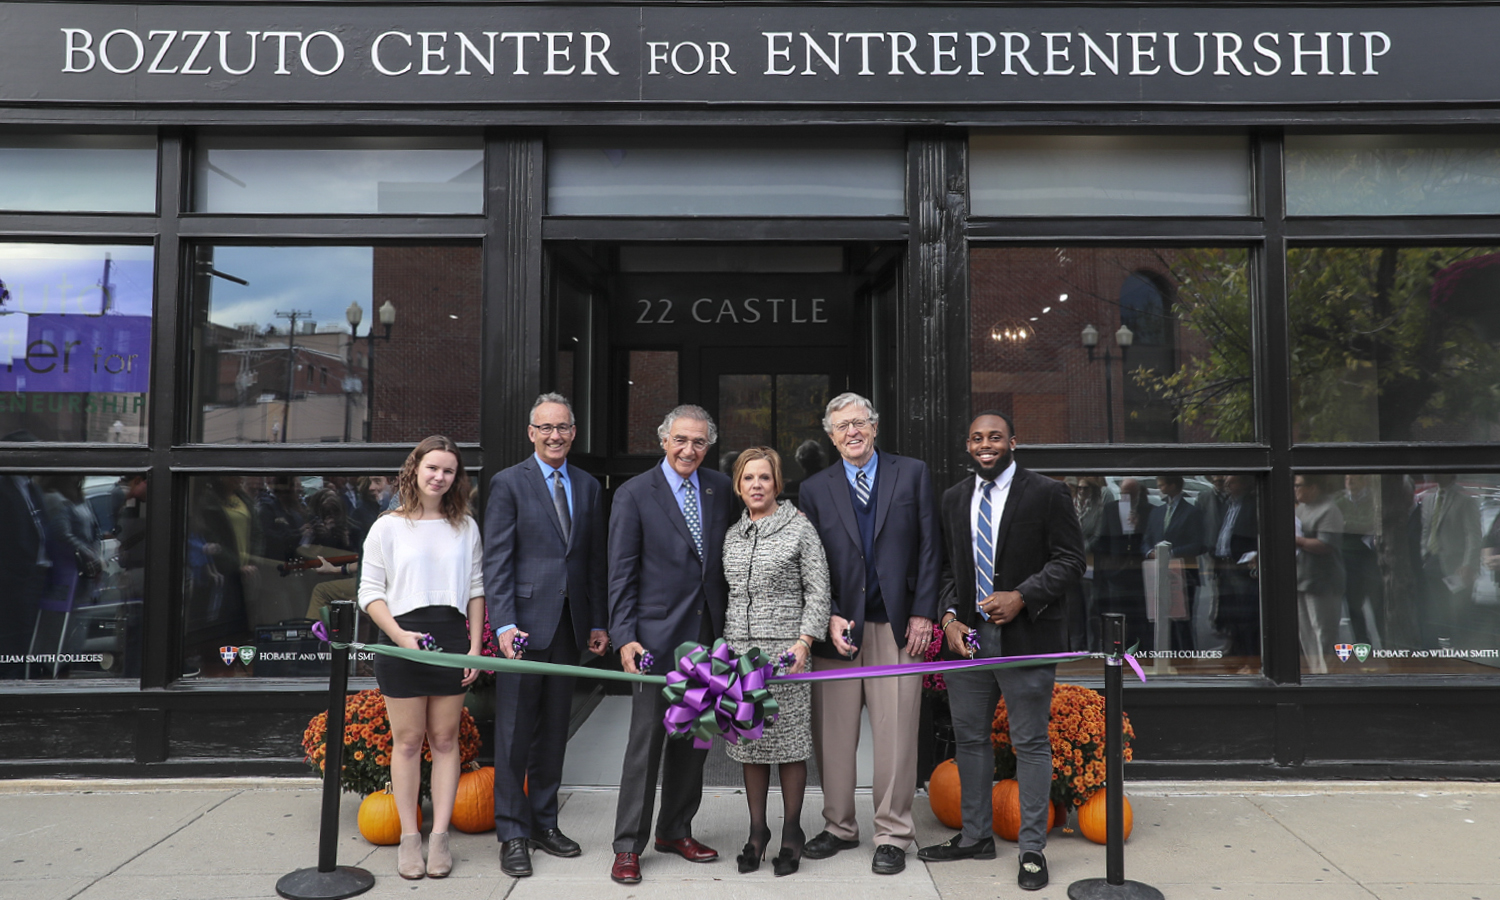 Chloe Elmer '20, Professor of Economics Thomas Drennen, Chair of the Board of Trustees Thomas S. Bozzuto '68 L.H.D. '18, Interim President Patrick A. McGuire L.H.D. '12and Al Smith '19â pose for a photo during the ribbon cutting ceremony as part of the dedication of the new Bozzuto Center for Entrepreneurshipâ in downtown Geneva, N.Y.